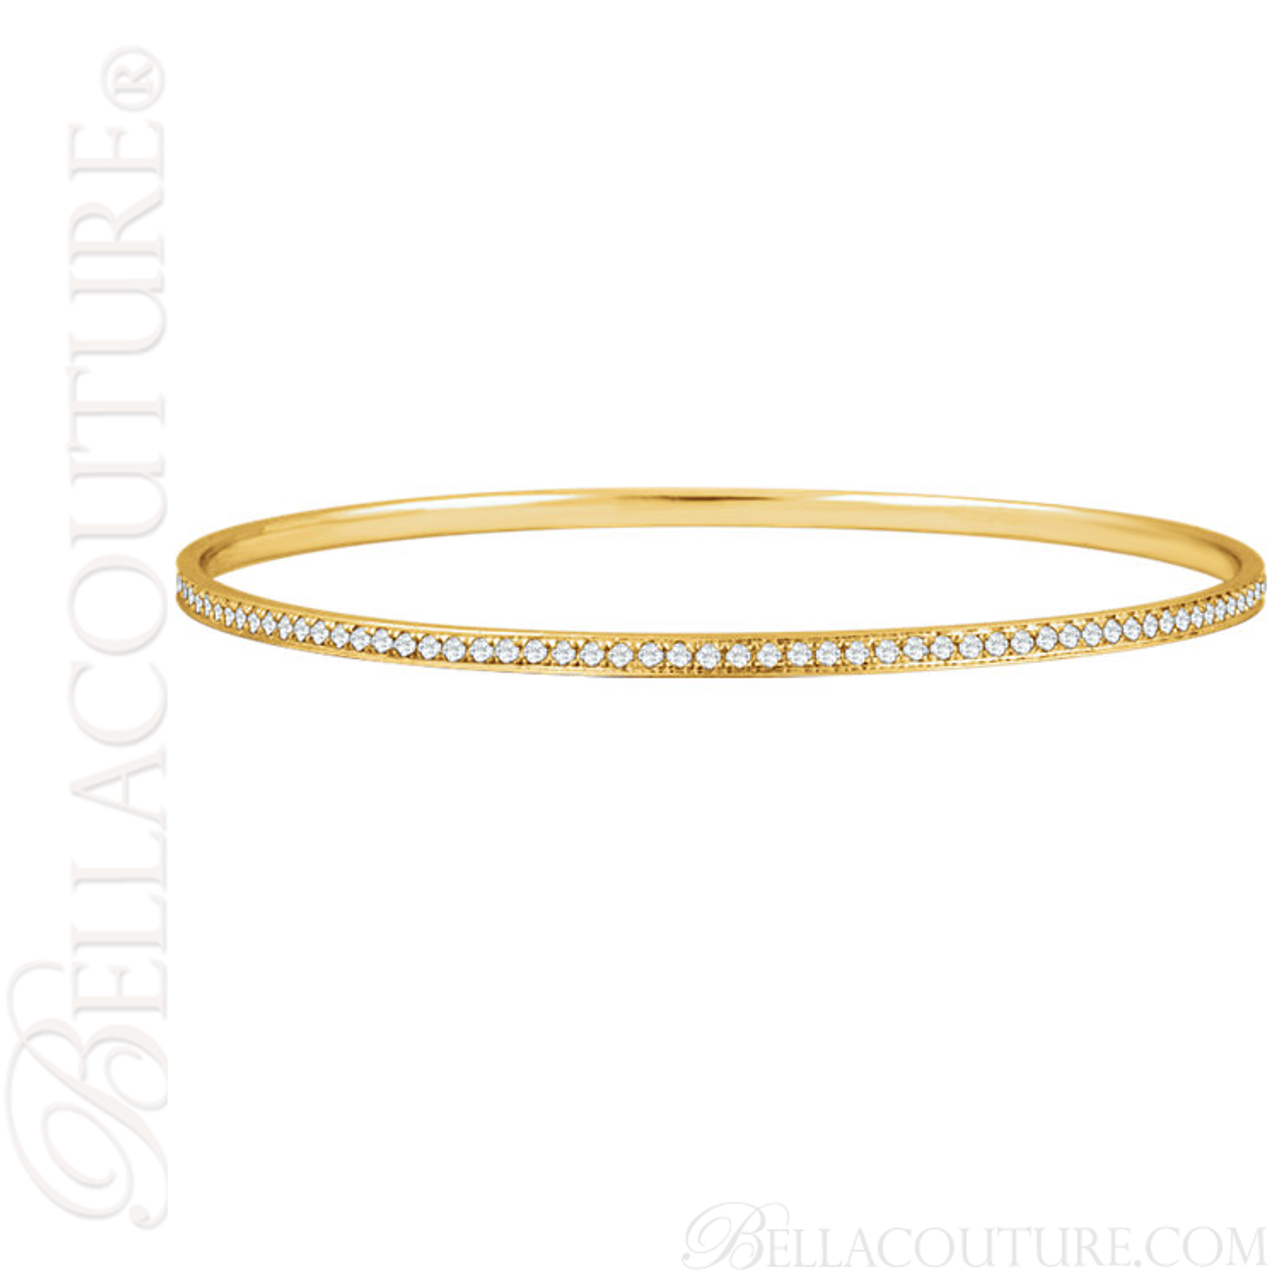 ben bracelet bridge jeweler bangle jewelry gold bangles